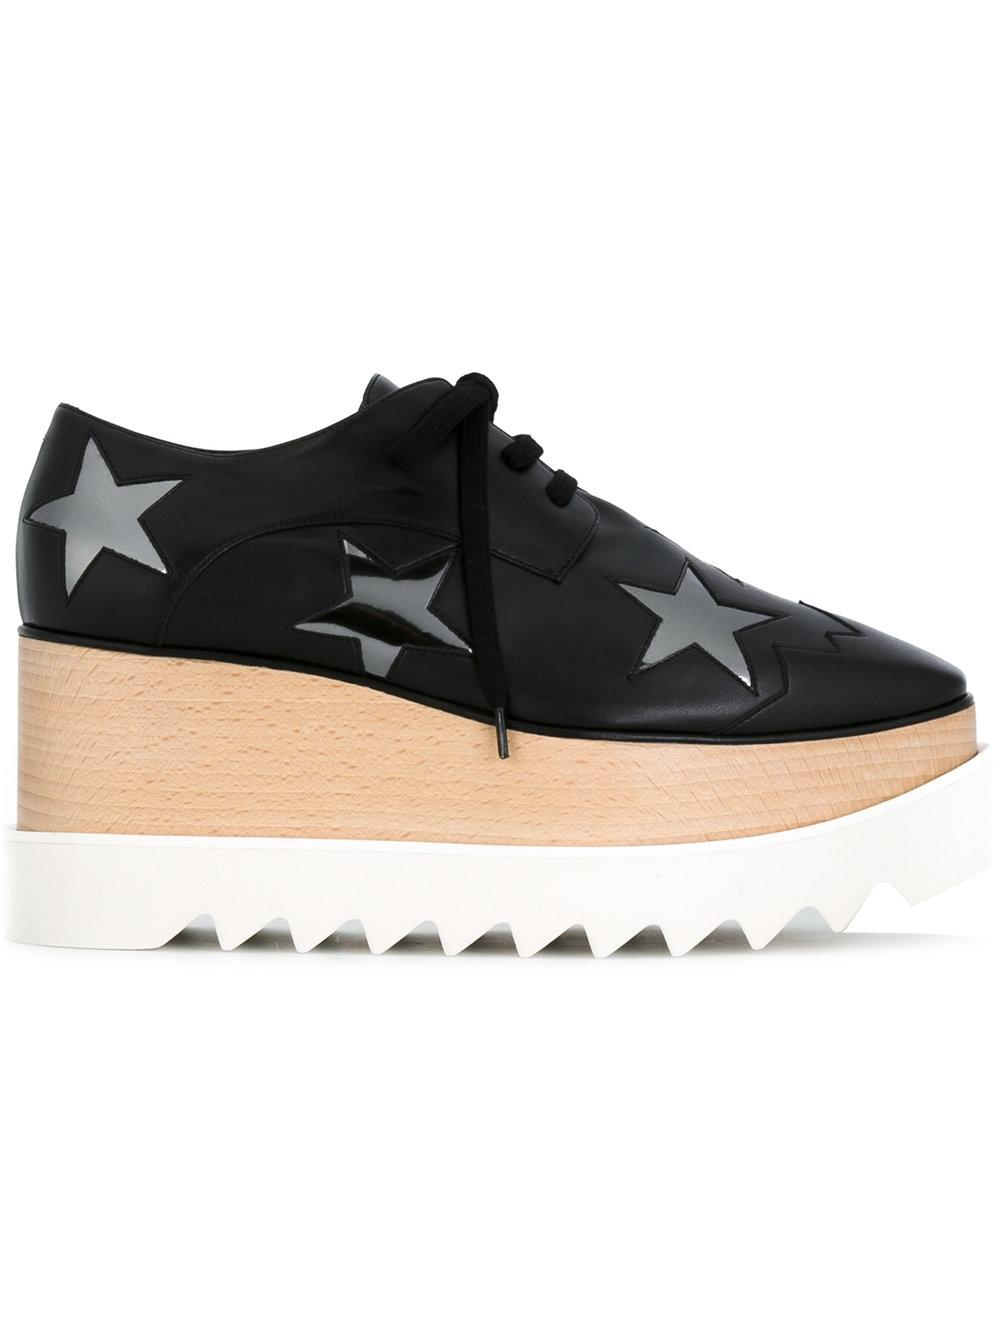 Free Shipping Outlet Black and Silver Elyse Star Platform Derbys Stella McCartney Cheap Sale Purchase Sale Extremely YMnZkrye